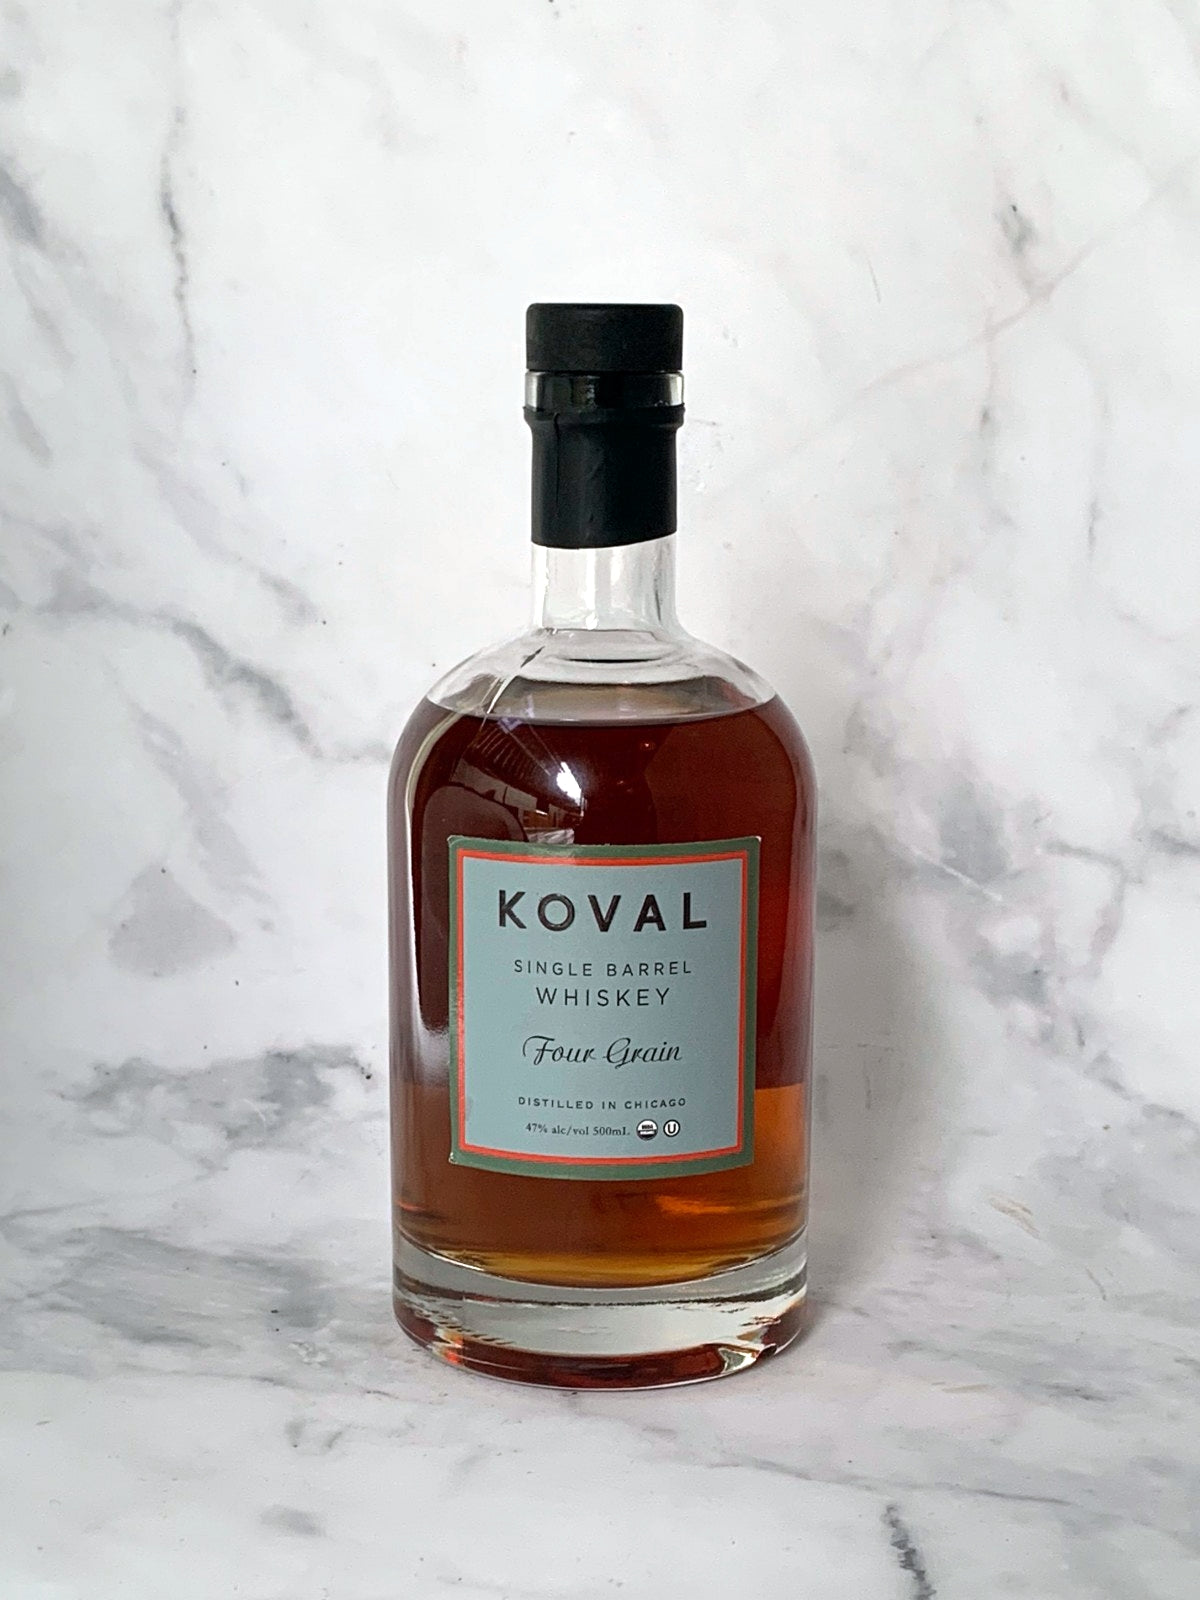 Koval Four Grain Single Barrel Whiskey (50ml serve)